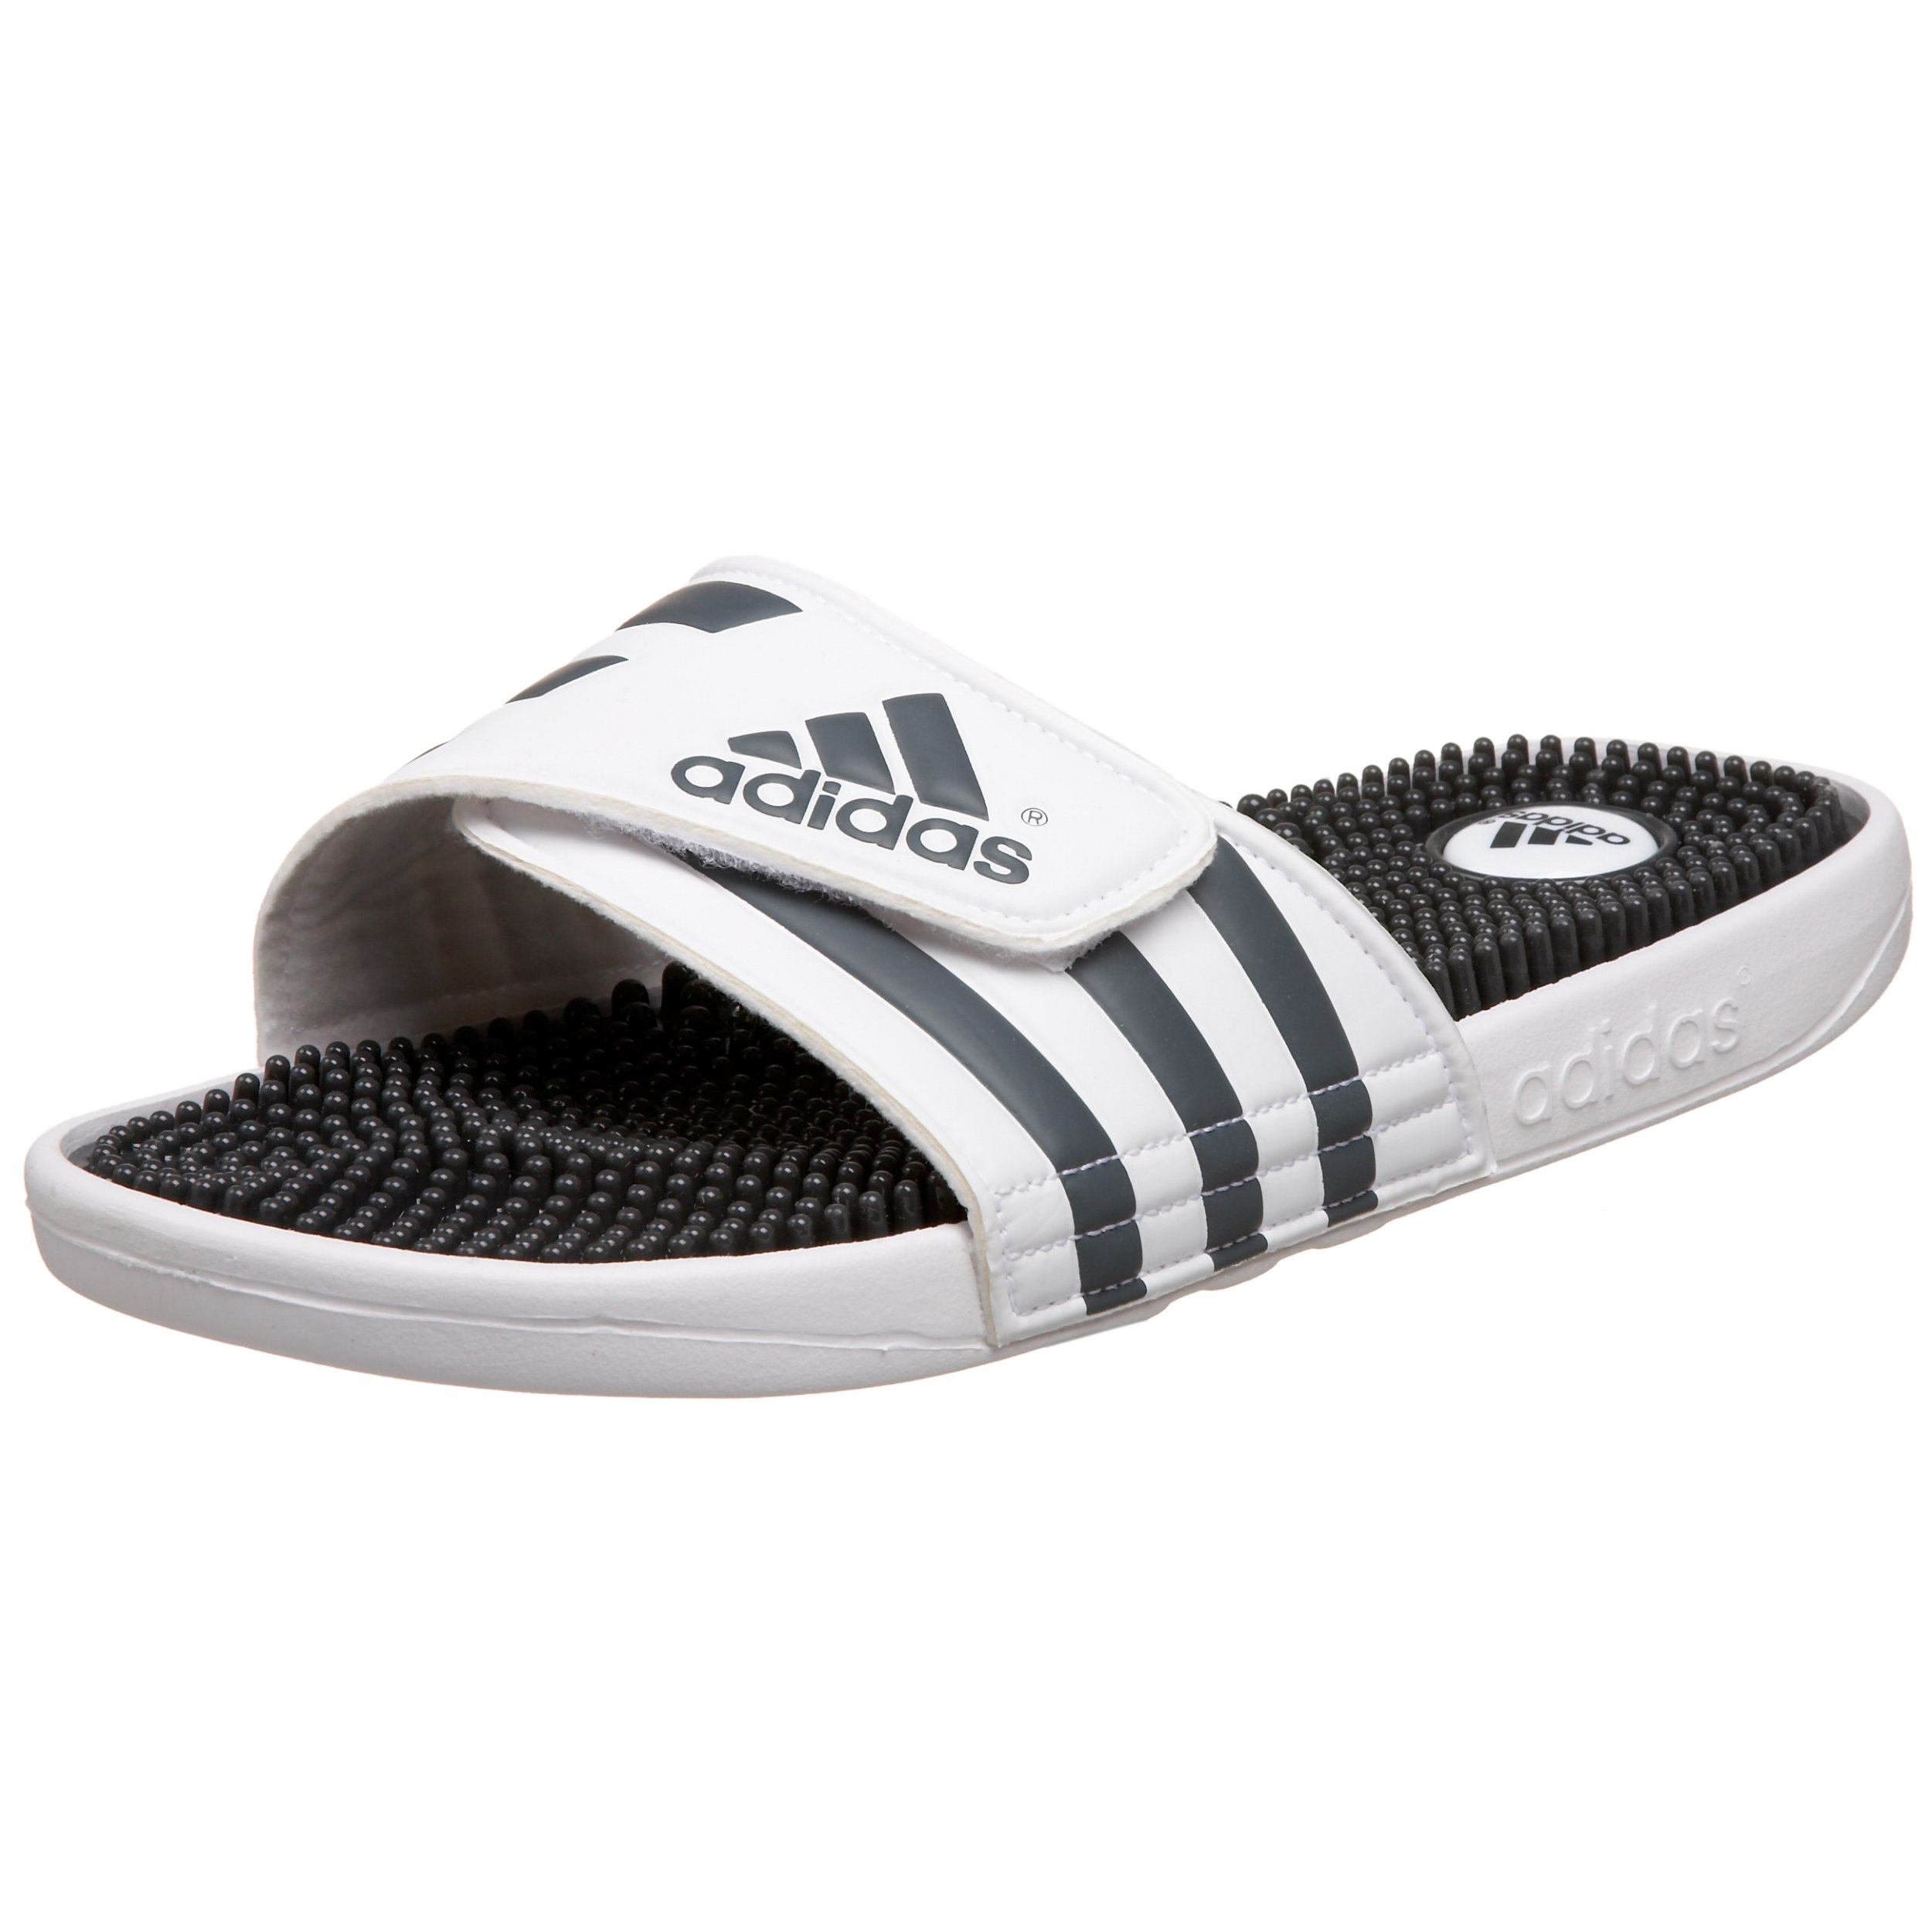 7f8fe69483f93 adidas Originals Men's Adissage Sandal,Run White/Graphite/Run White ...